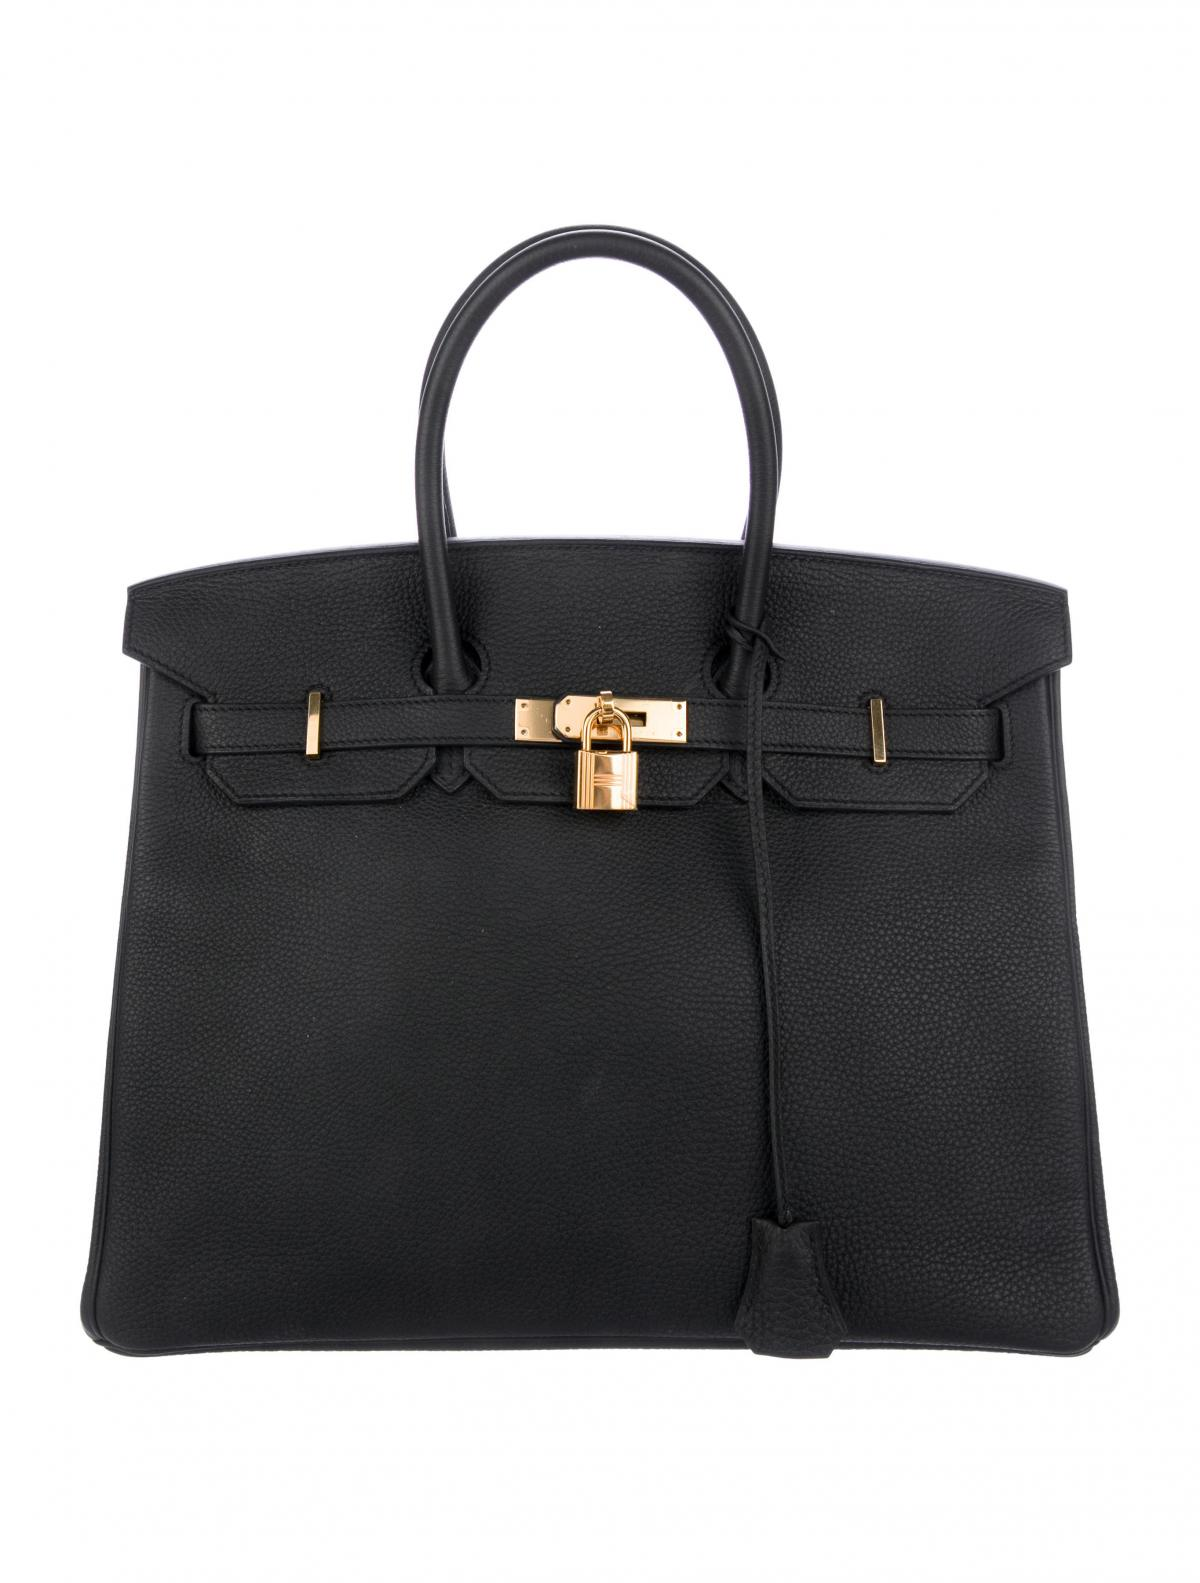 Togo Birkin 35 by Hermes, available on therealreal.com for $13500 Olivia Culpo Bags Exact Product